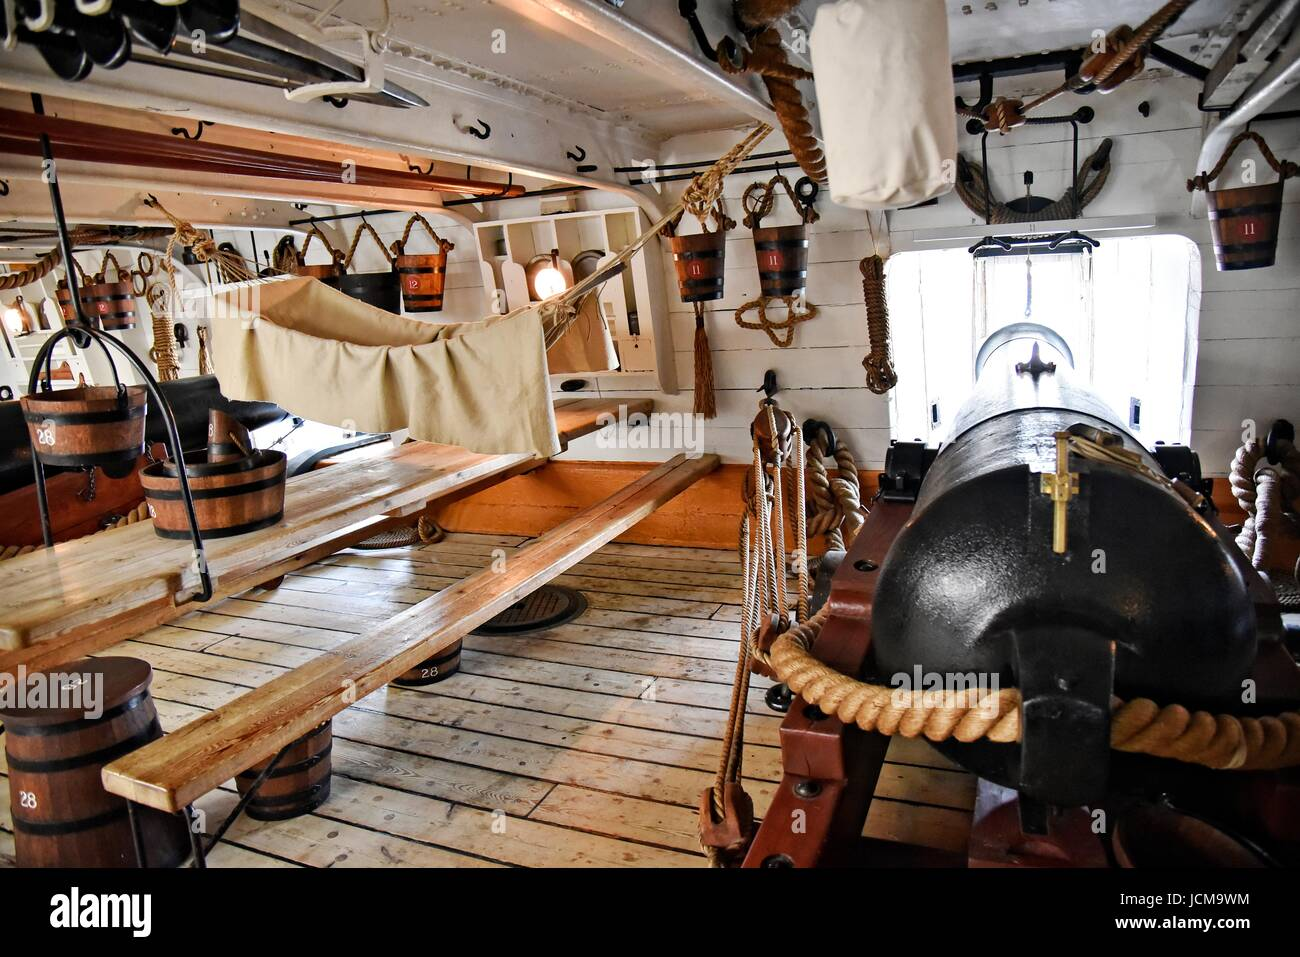 Portsmouth England UK HMS Warrior a 40-gun steam-powered armoured frigate built for the Royal Navy.The gun deck, - Stock Image